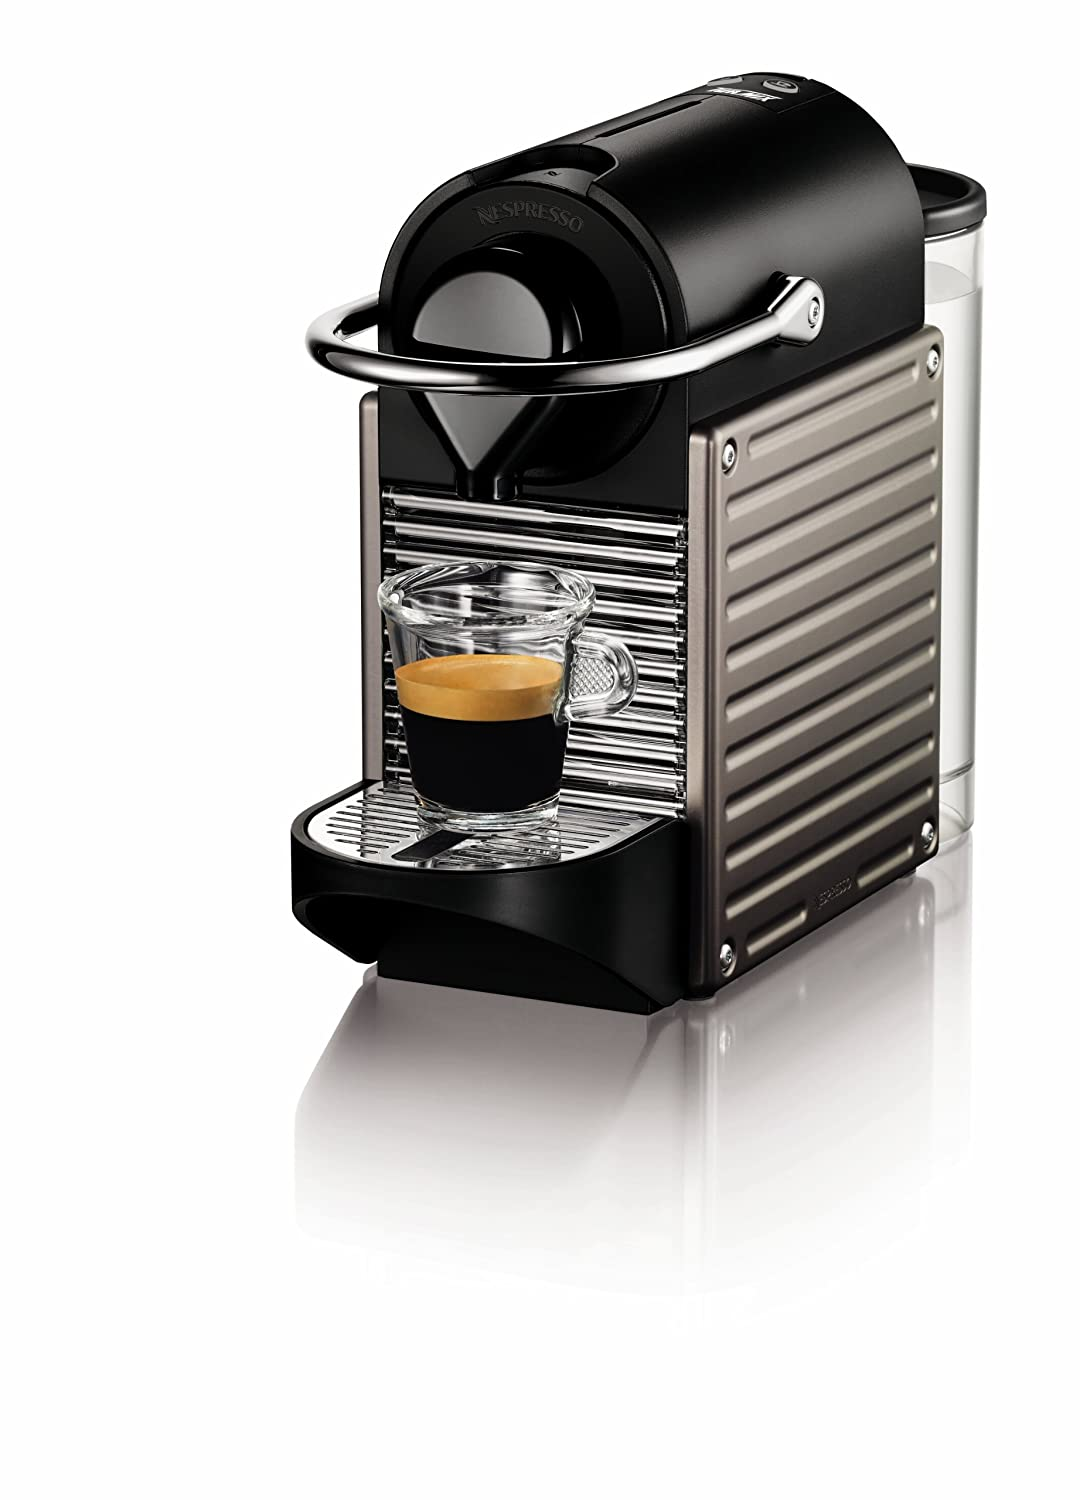 Coffee Maker Usage : Best-Rated Super Automatic Espresso Coffee Machines For Home Use - Reviews And Ratings 2015